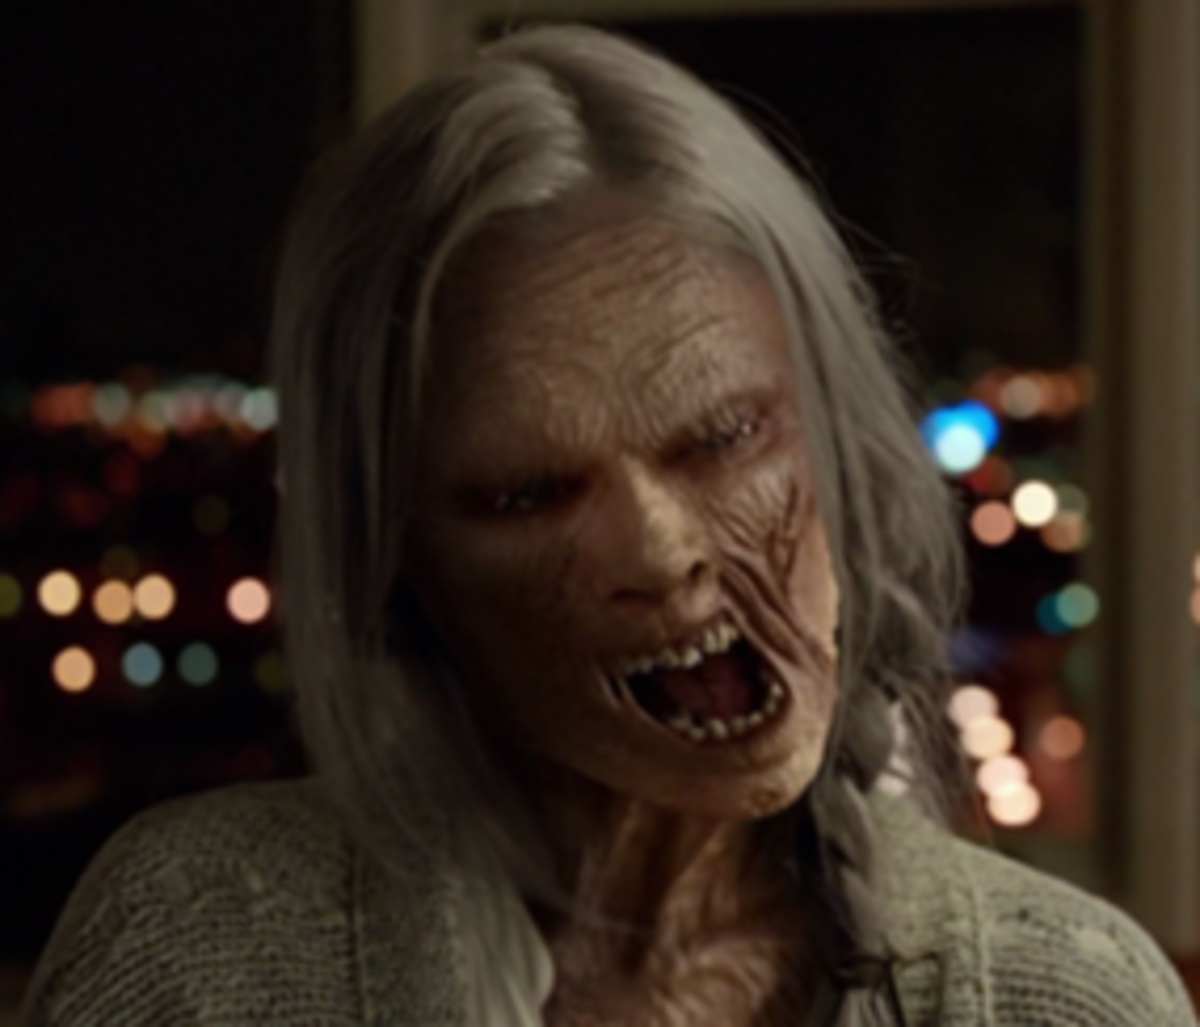 Grimm: Top 10 Wesen of All Time